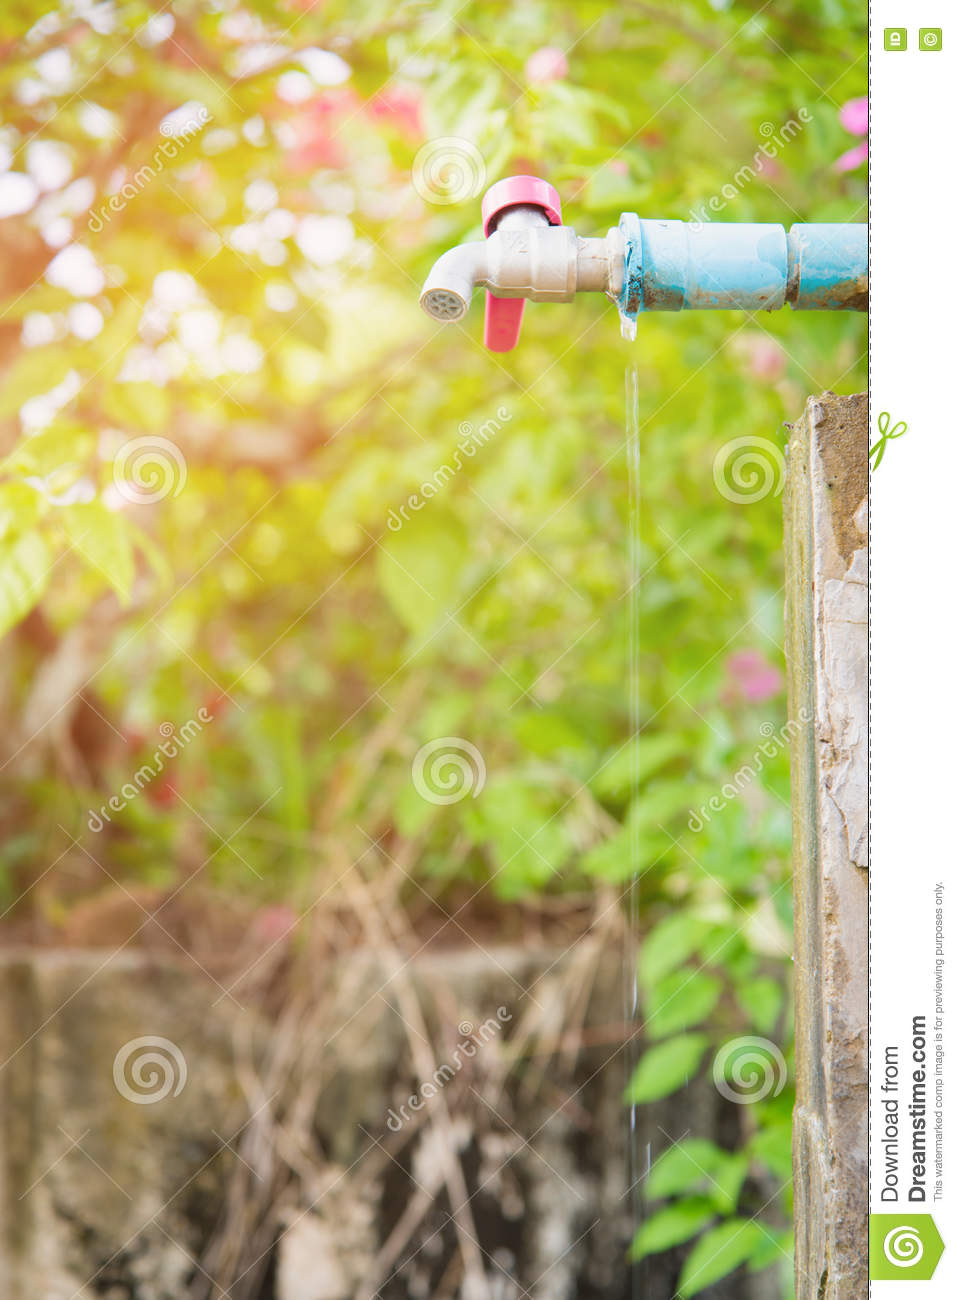 Leaky faucet stock image. Image of concept, conserve - 81202663